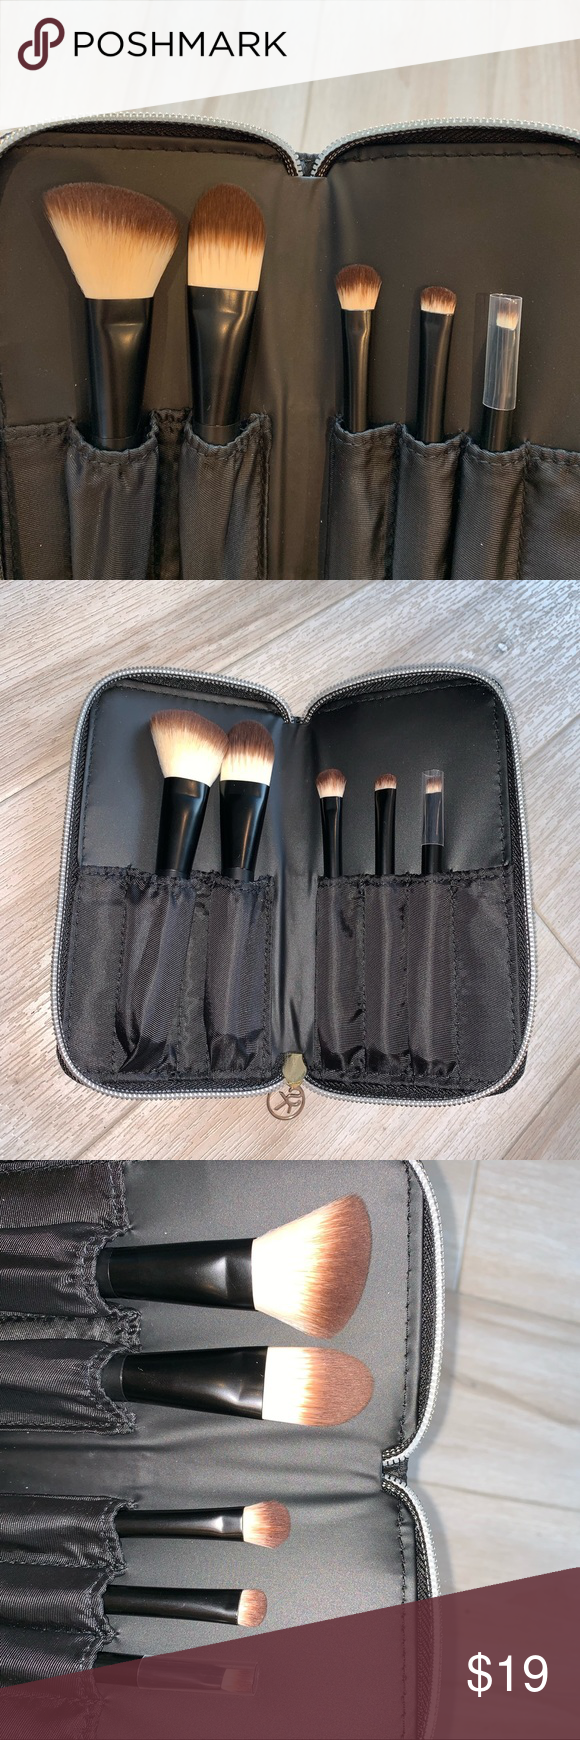 Travel Brush Set NWT Travel brushes, Sephora makeup